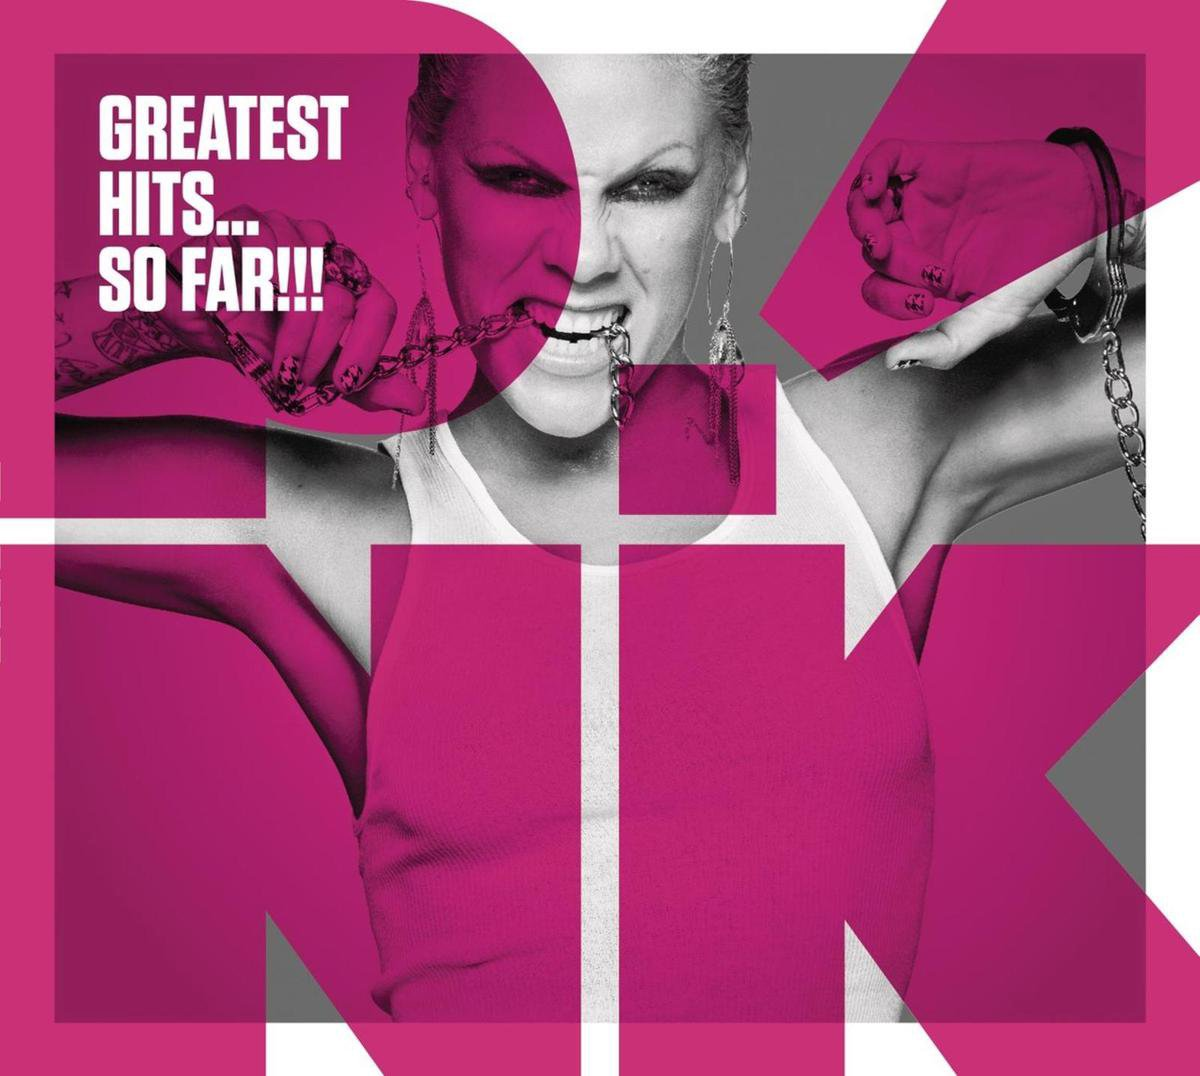 Greatest Hits... So Far!!! - Pink